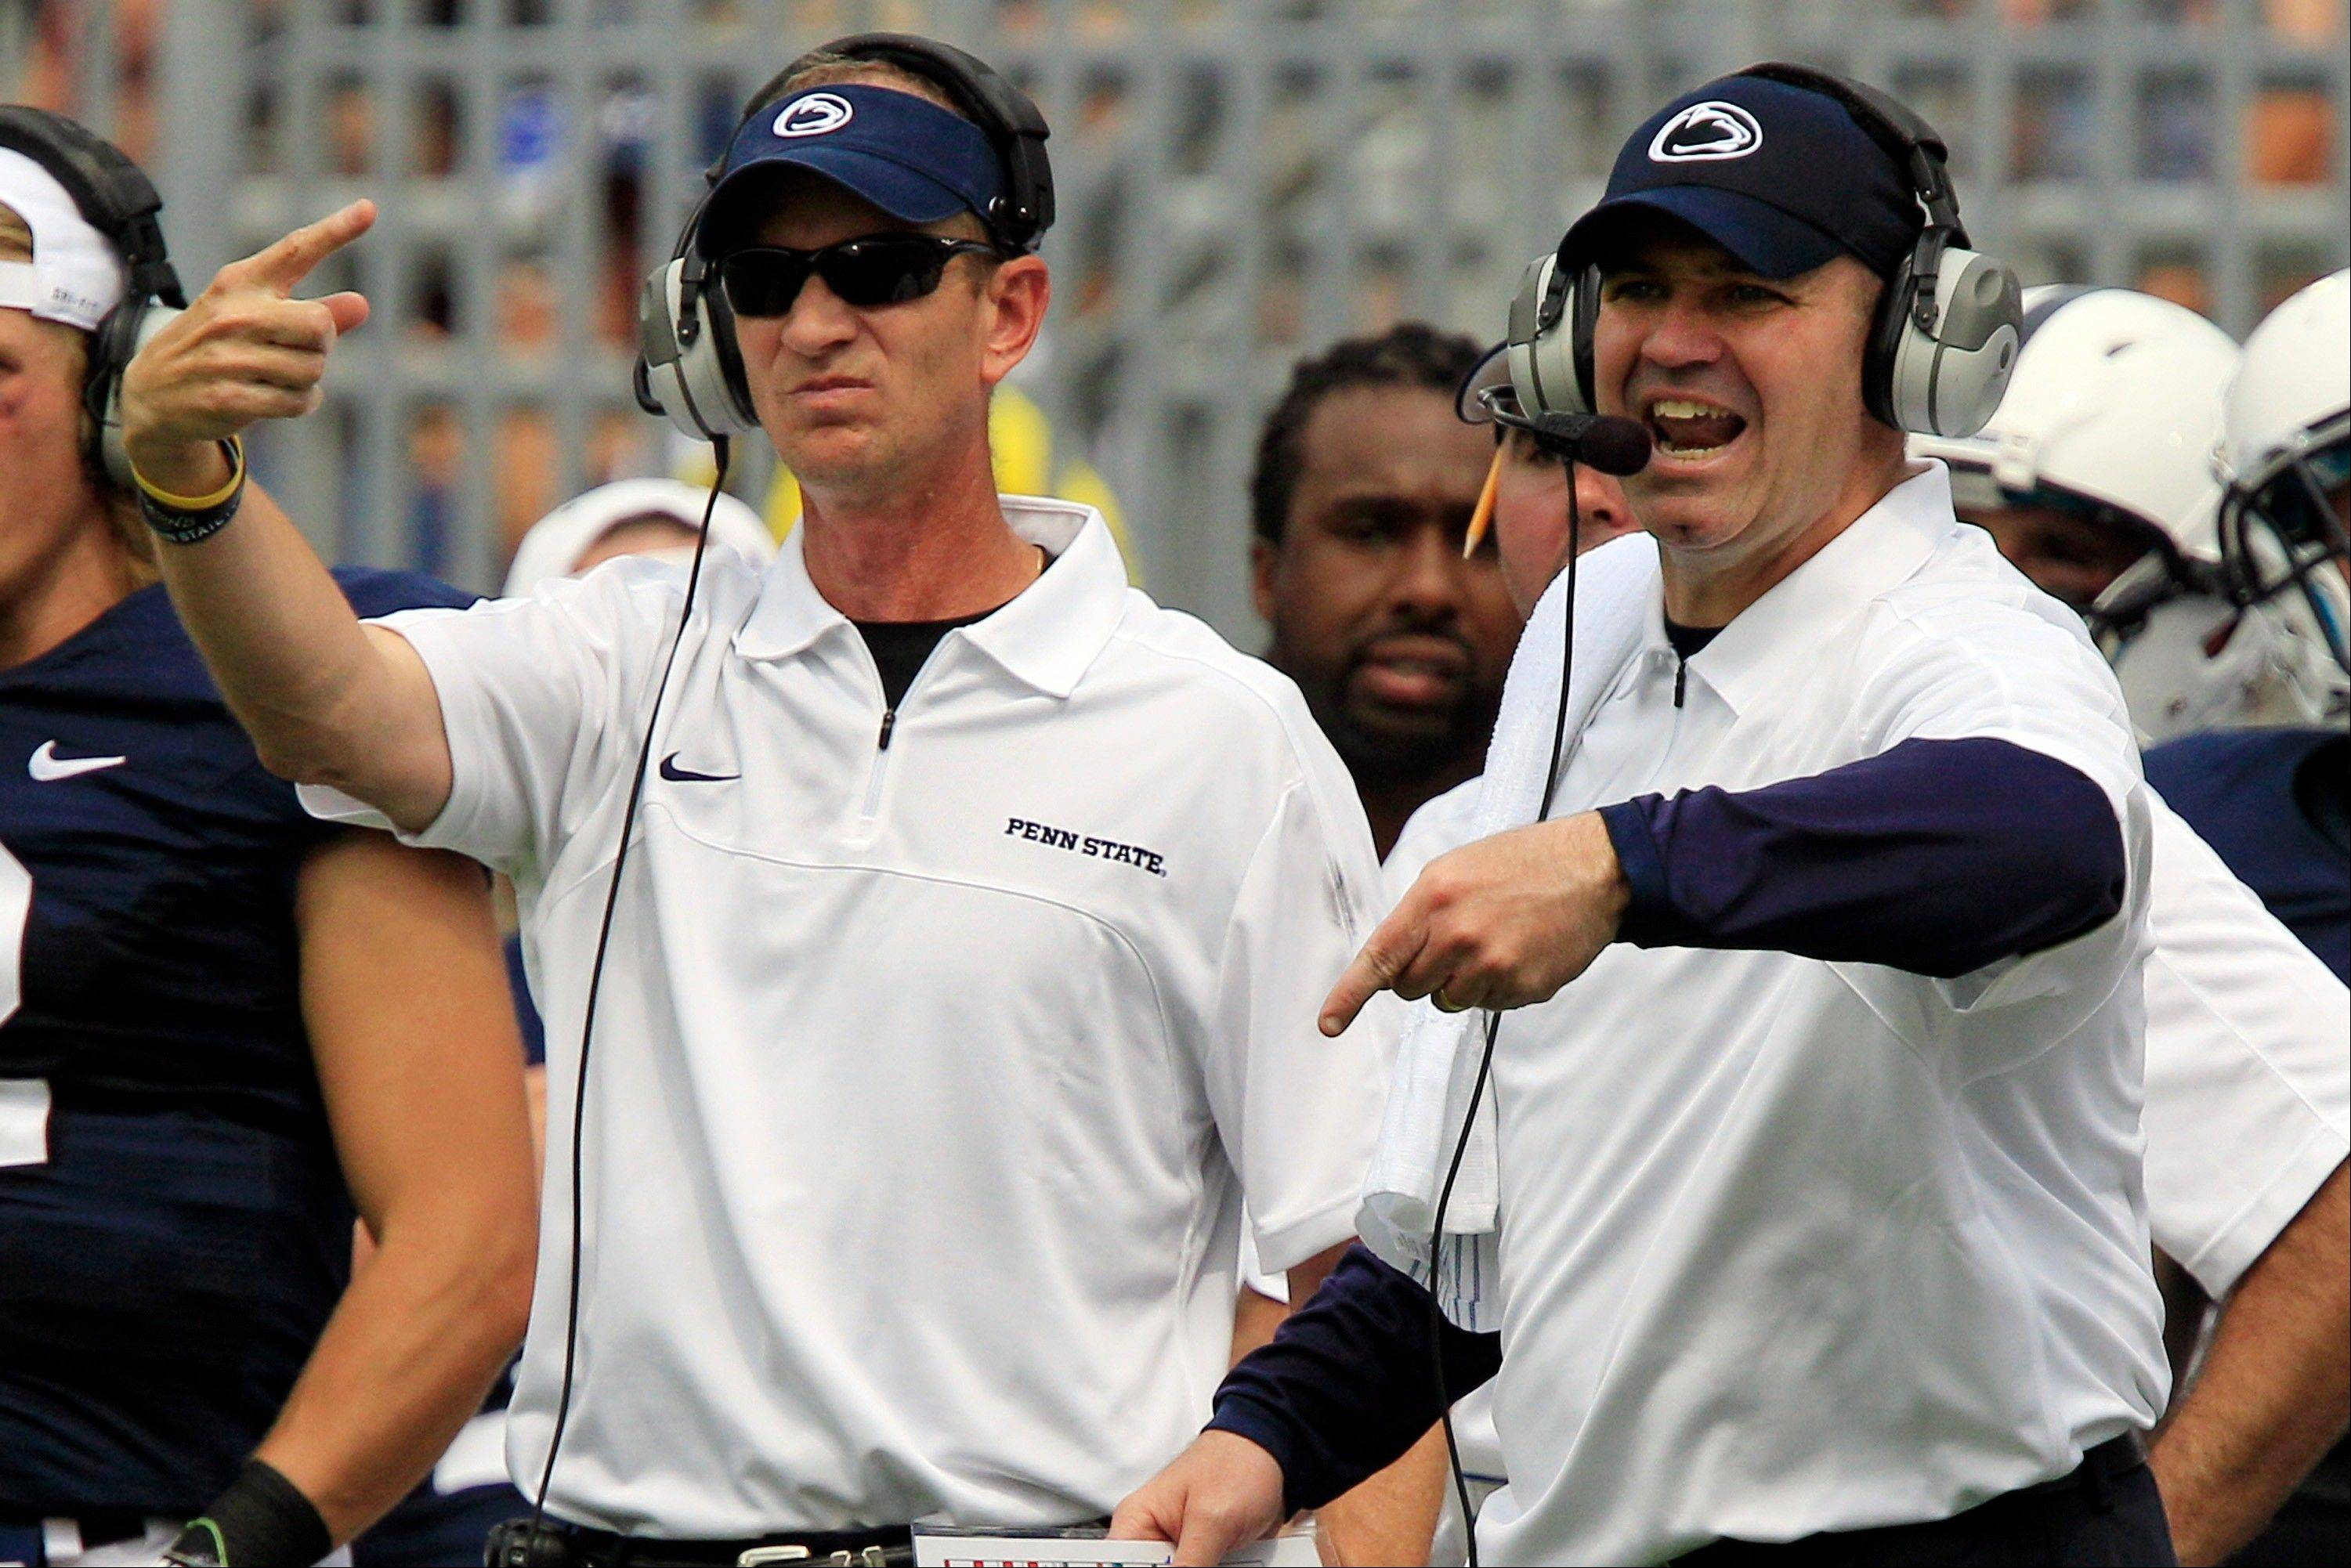 Penn State head coach Bill O�Brien, right, and quarterbacks coach Charlie Fisher, instruct from the sidelines during the first quarter of an NCAA college football game against Ohio at Beaver Stadium in State College, Pa., Saturday, Sept. 1, 2012. Penn State fans ushered in a new era in the football program with a raucous ovation as the team stormed the field for their first game under coach Bill O�Brien.